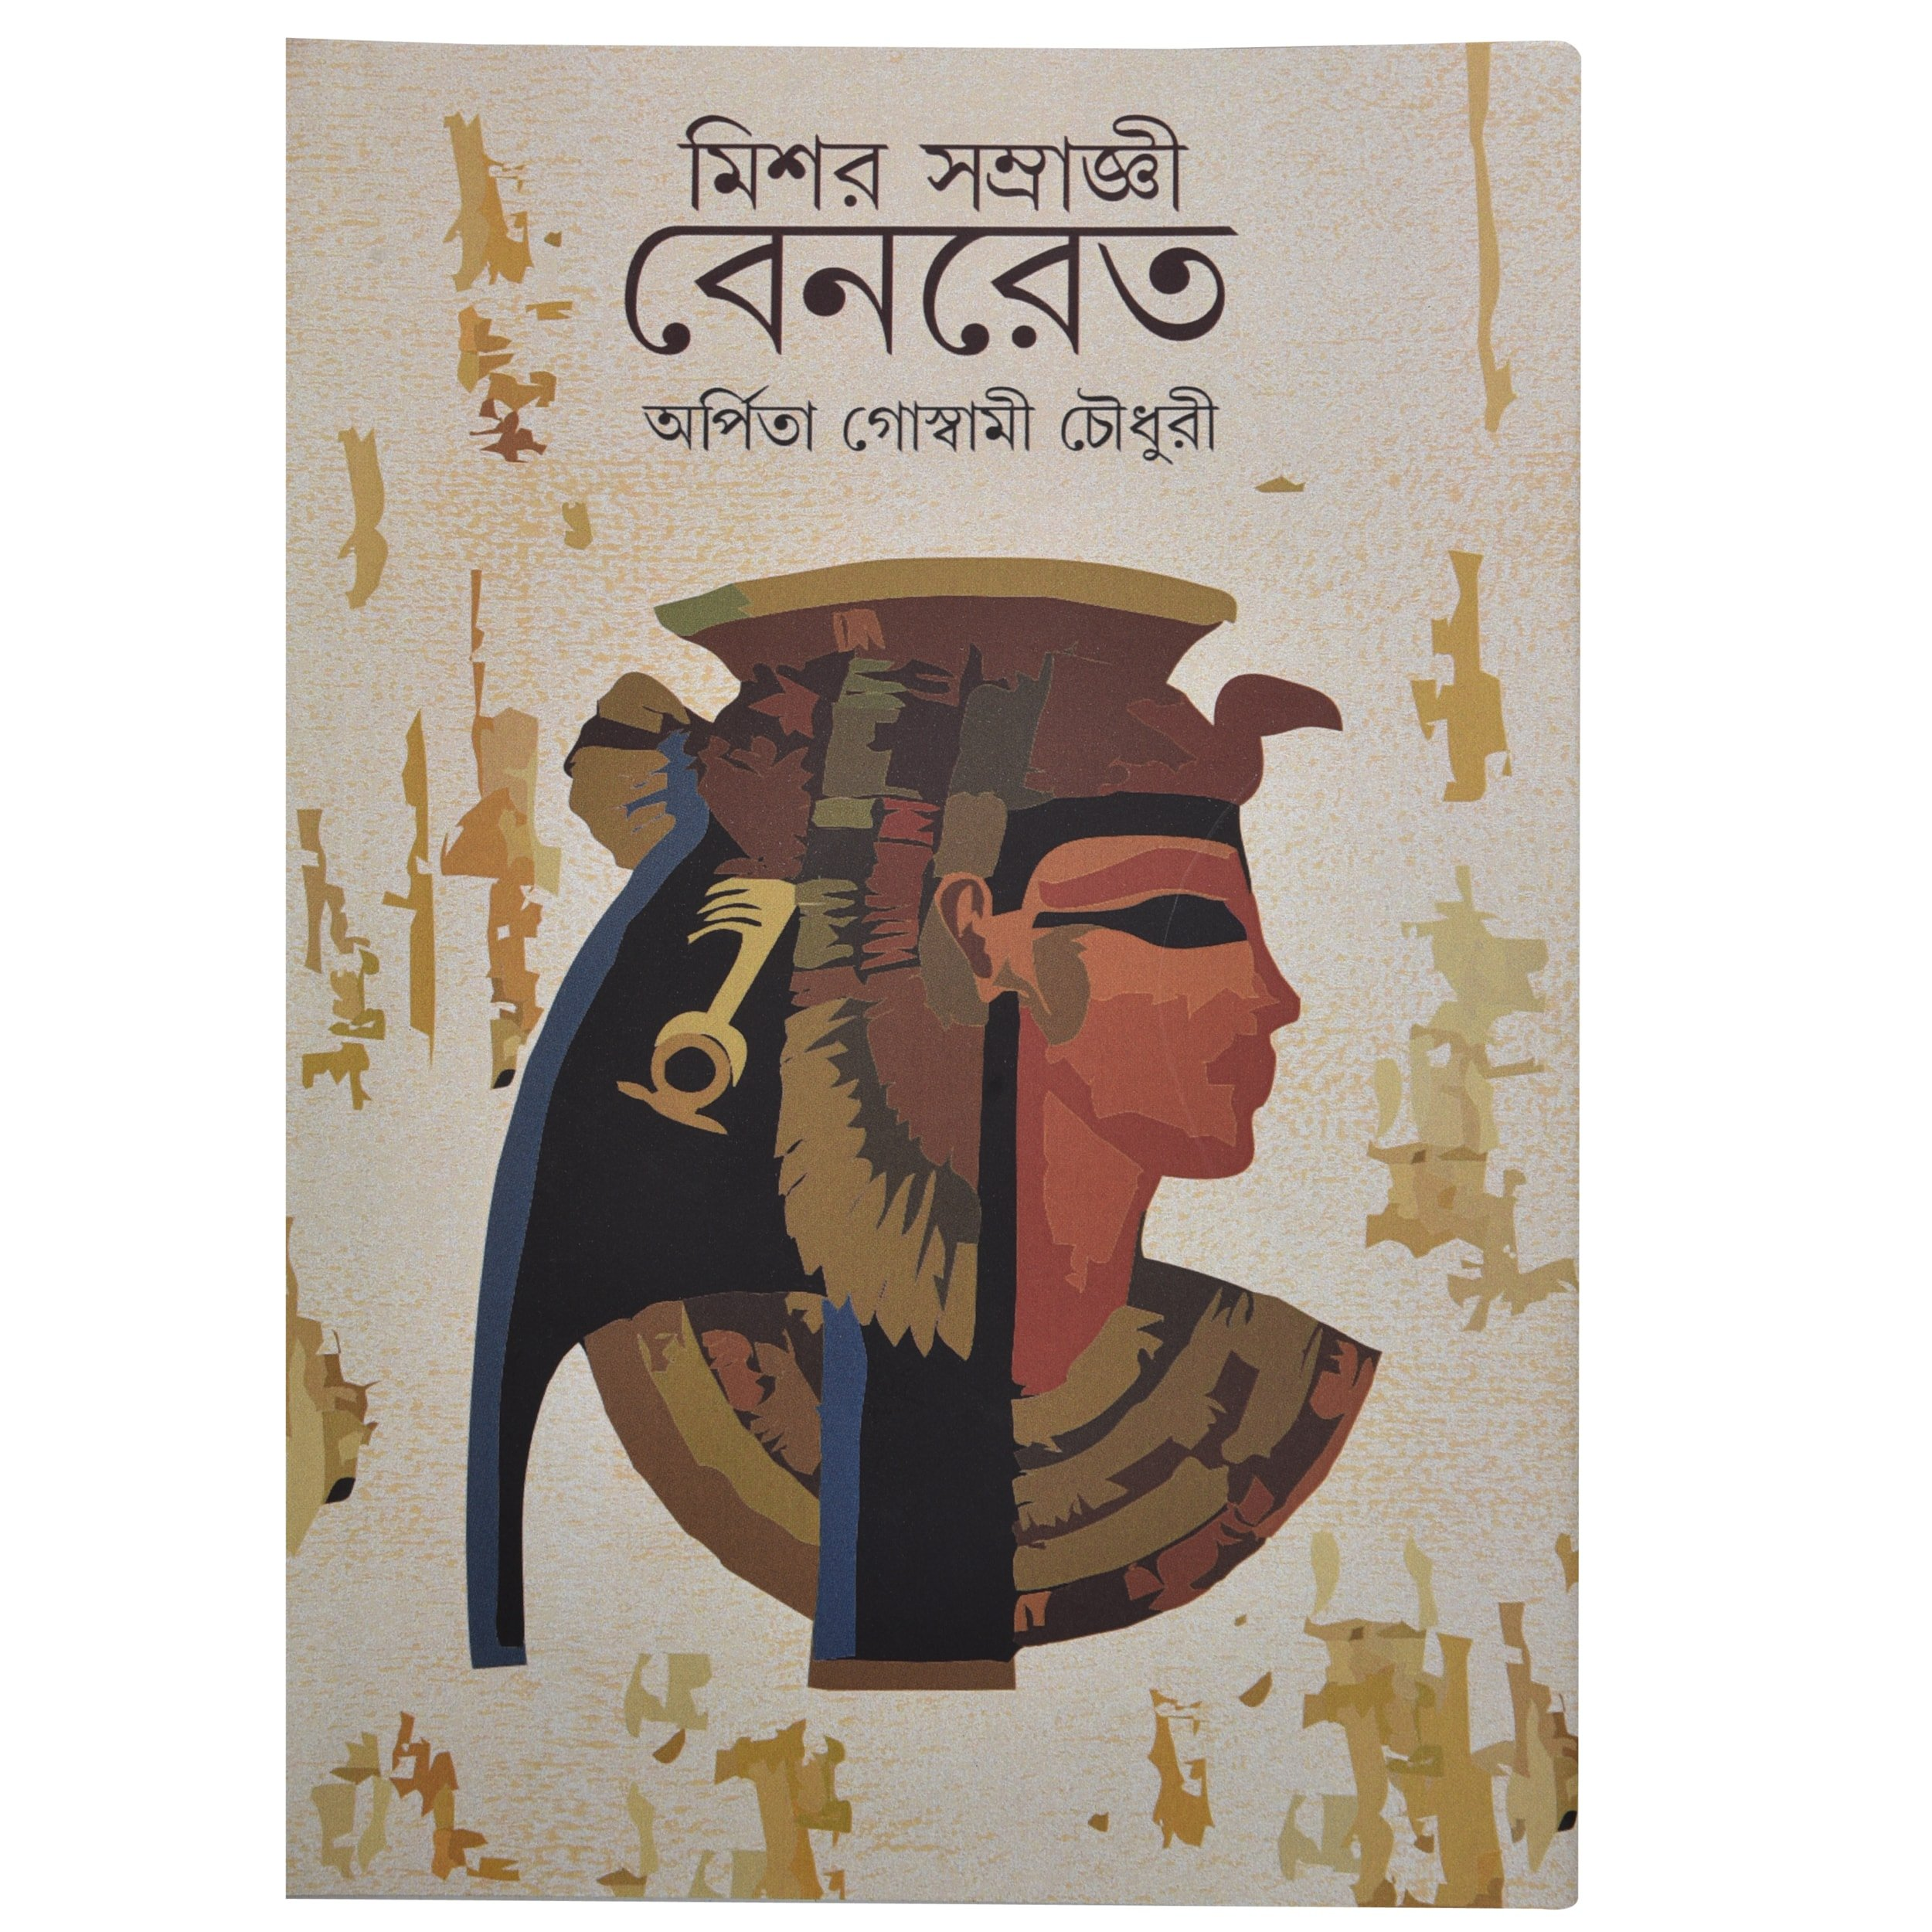 ddb8fb66441 Missar Samrragi Benret (A Novel) Author By-Arpita Goswami In Bengali  Language (Bengali) Hardcover – 2018